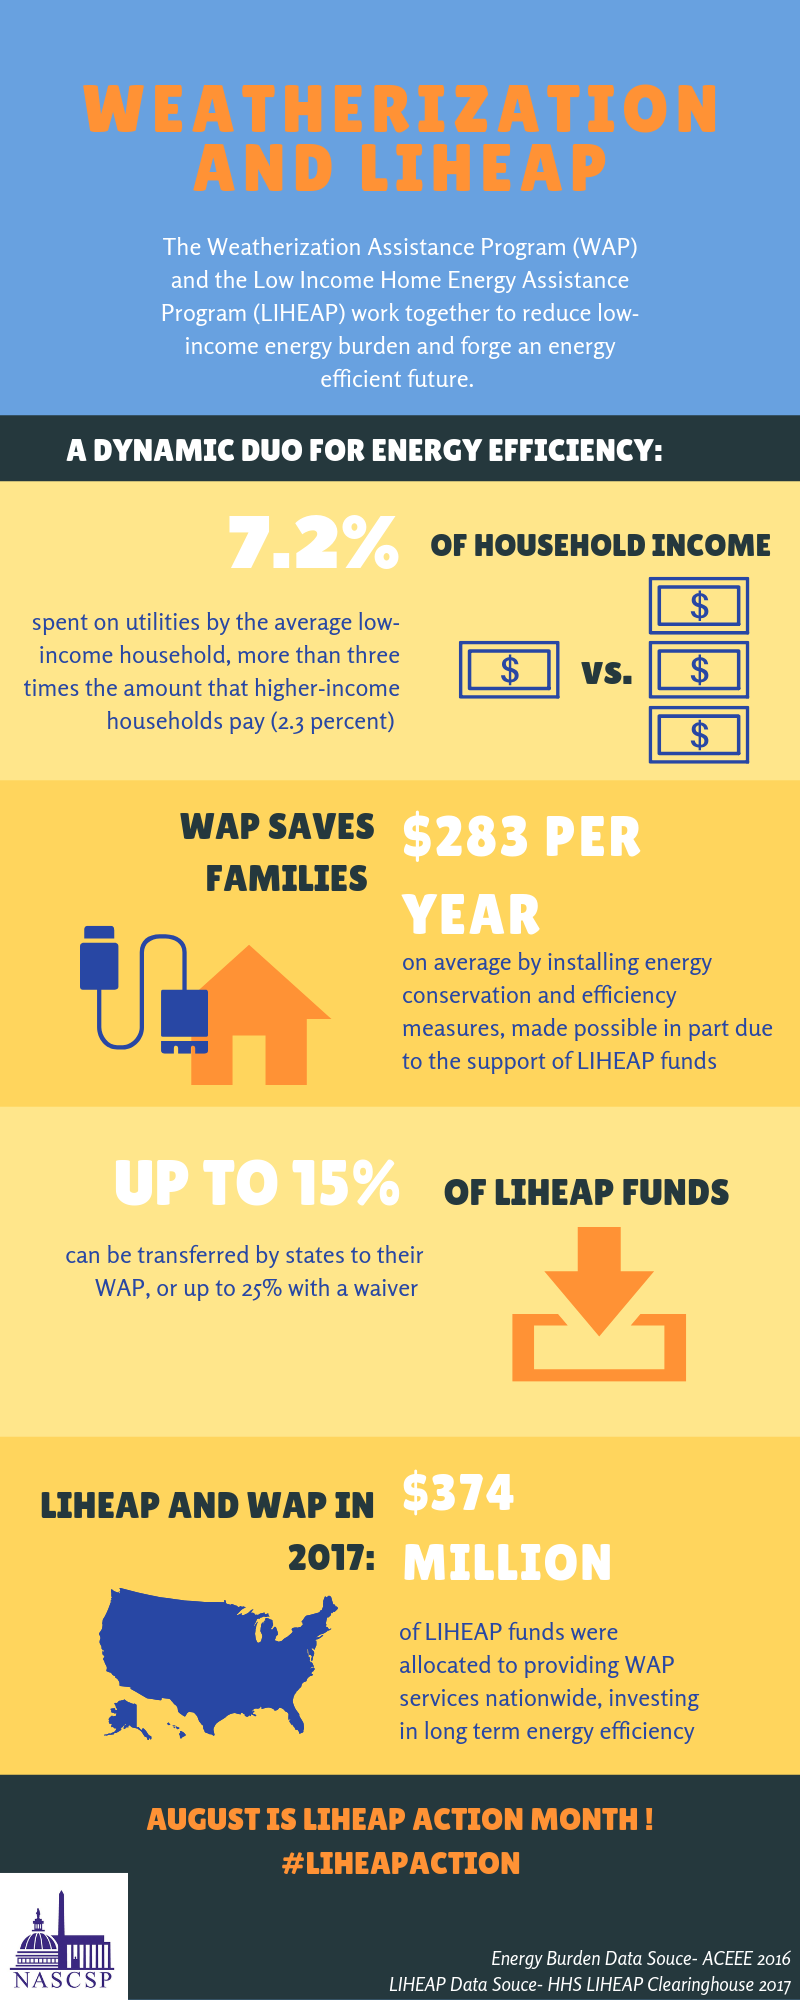 Liheap And Wap A Dynamic Duo For Reducing The Low Income